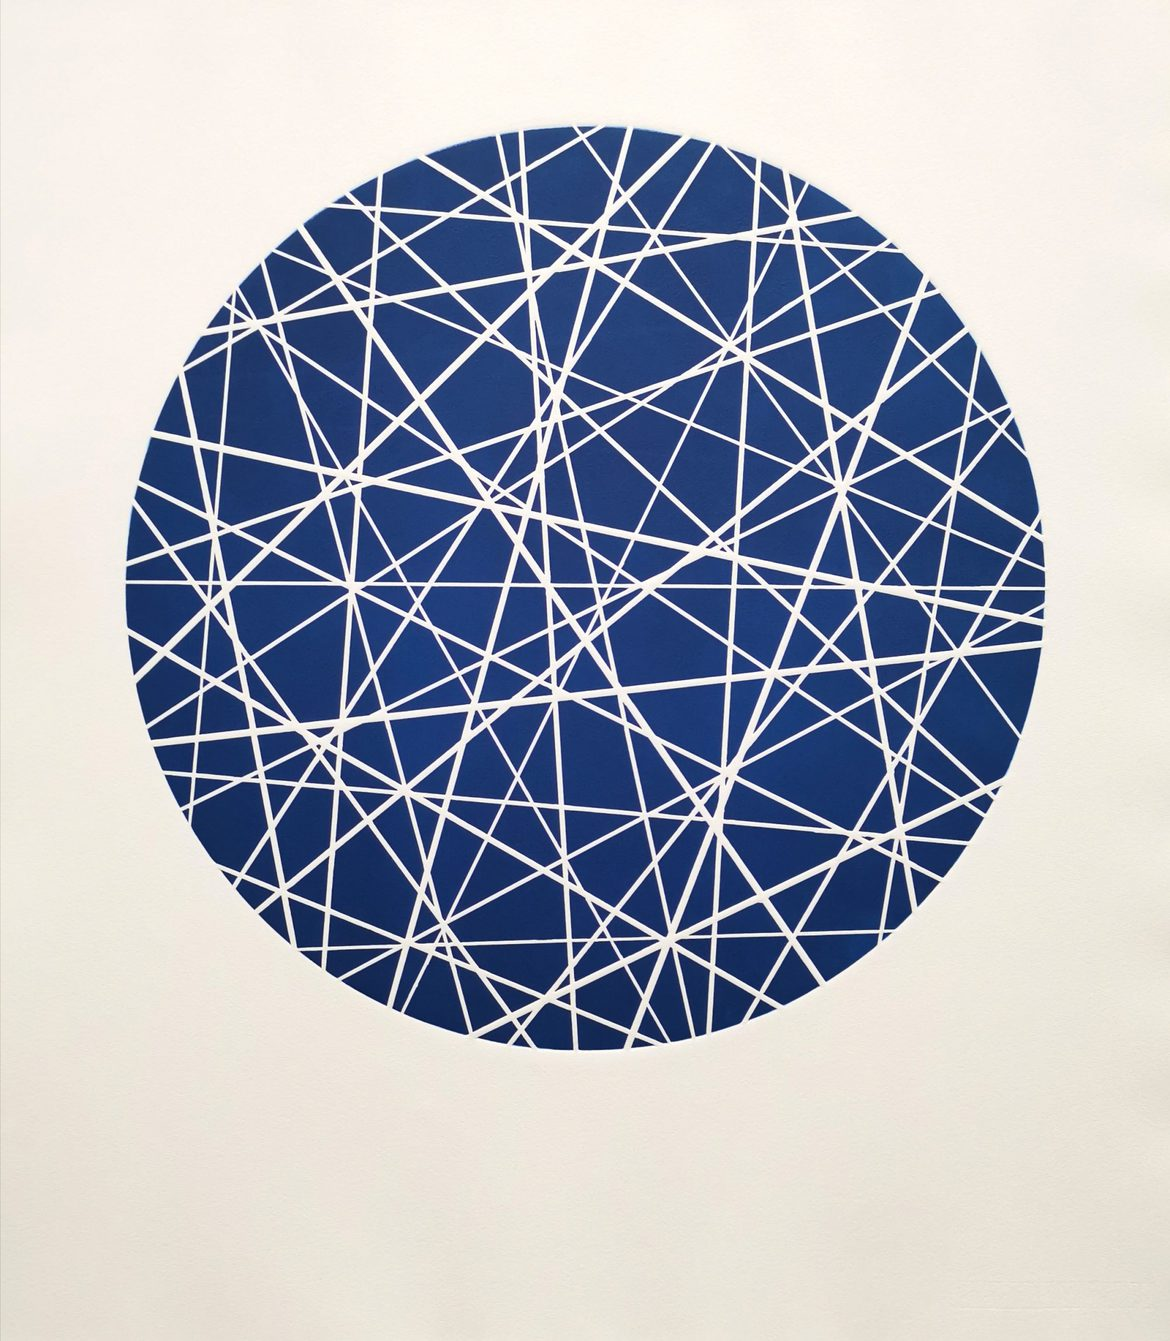 Intersecting (Midnight Blue), woodblock print, 300gsm hanhemuhle deckled edge etching paper, edition of 5, 79cm x 69.5cm